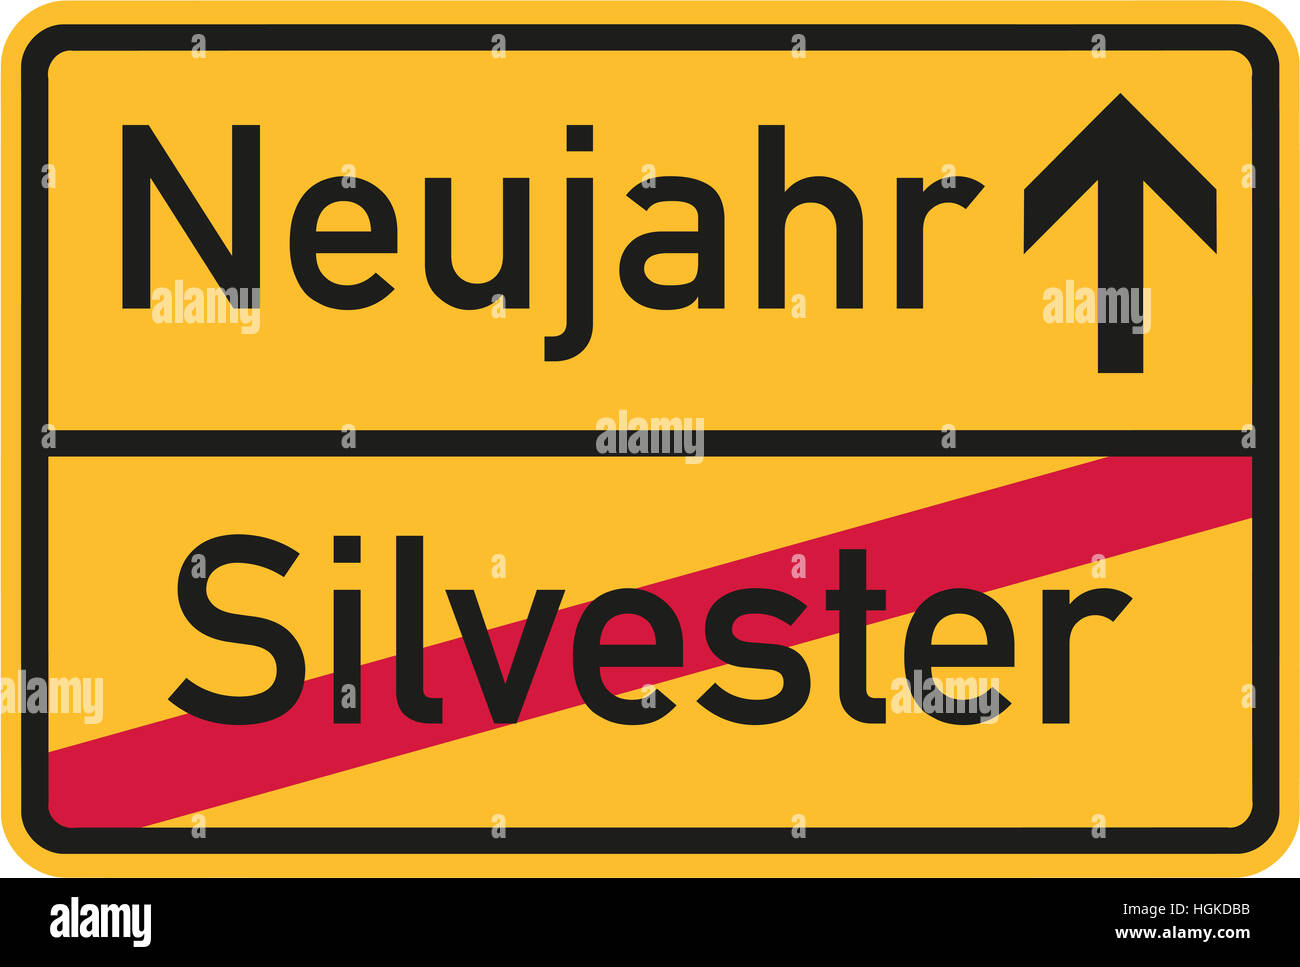 From Sylvester to New year - german sign - Stock Image